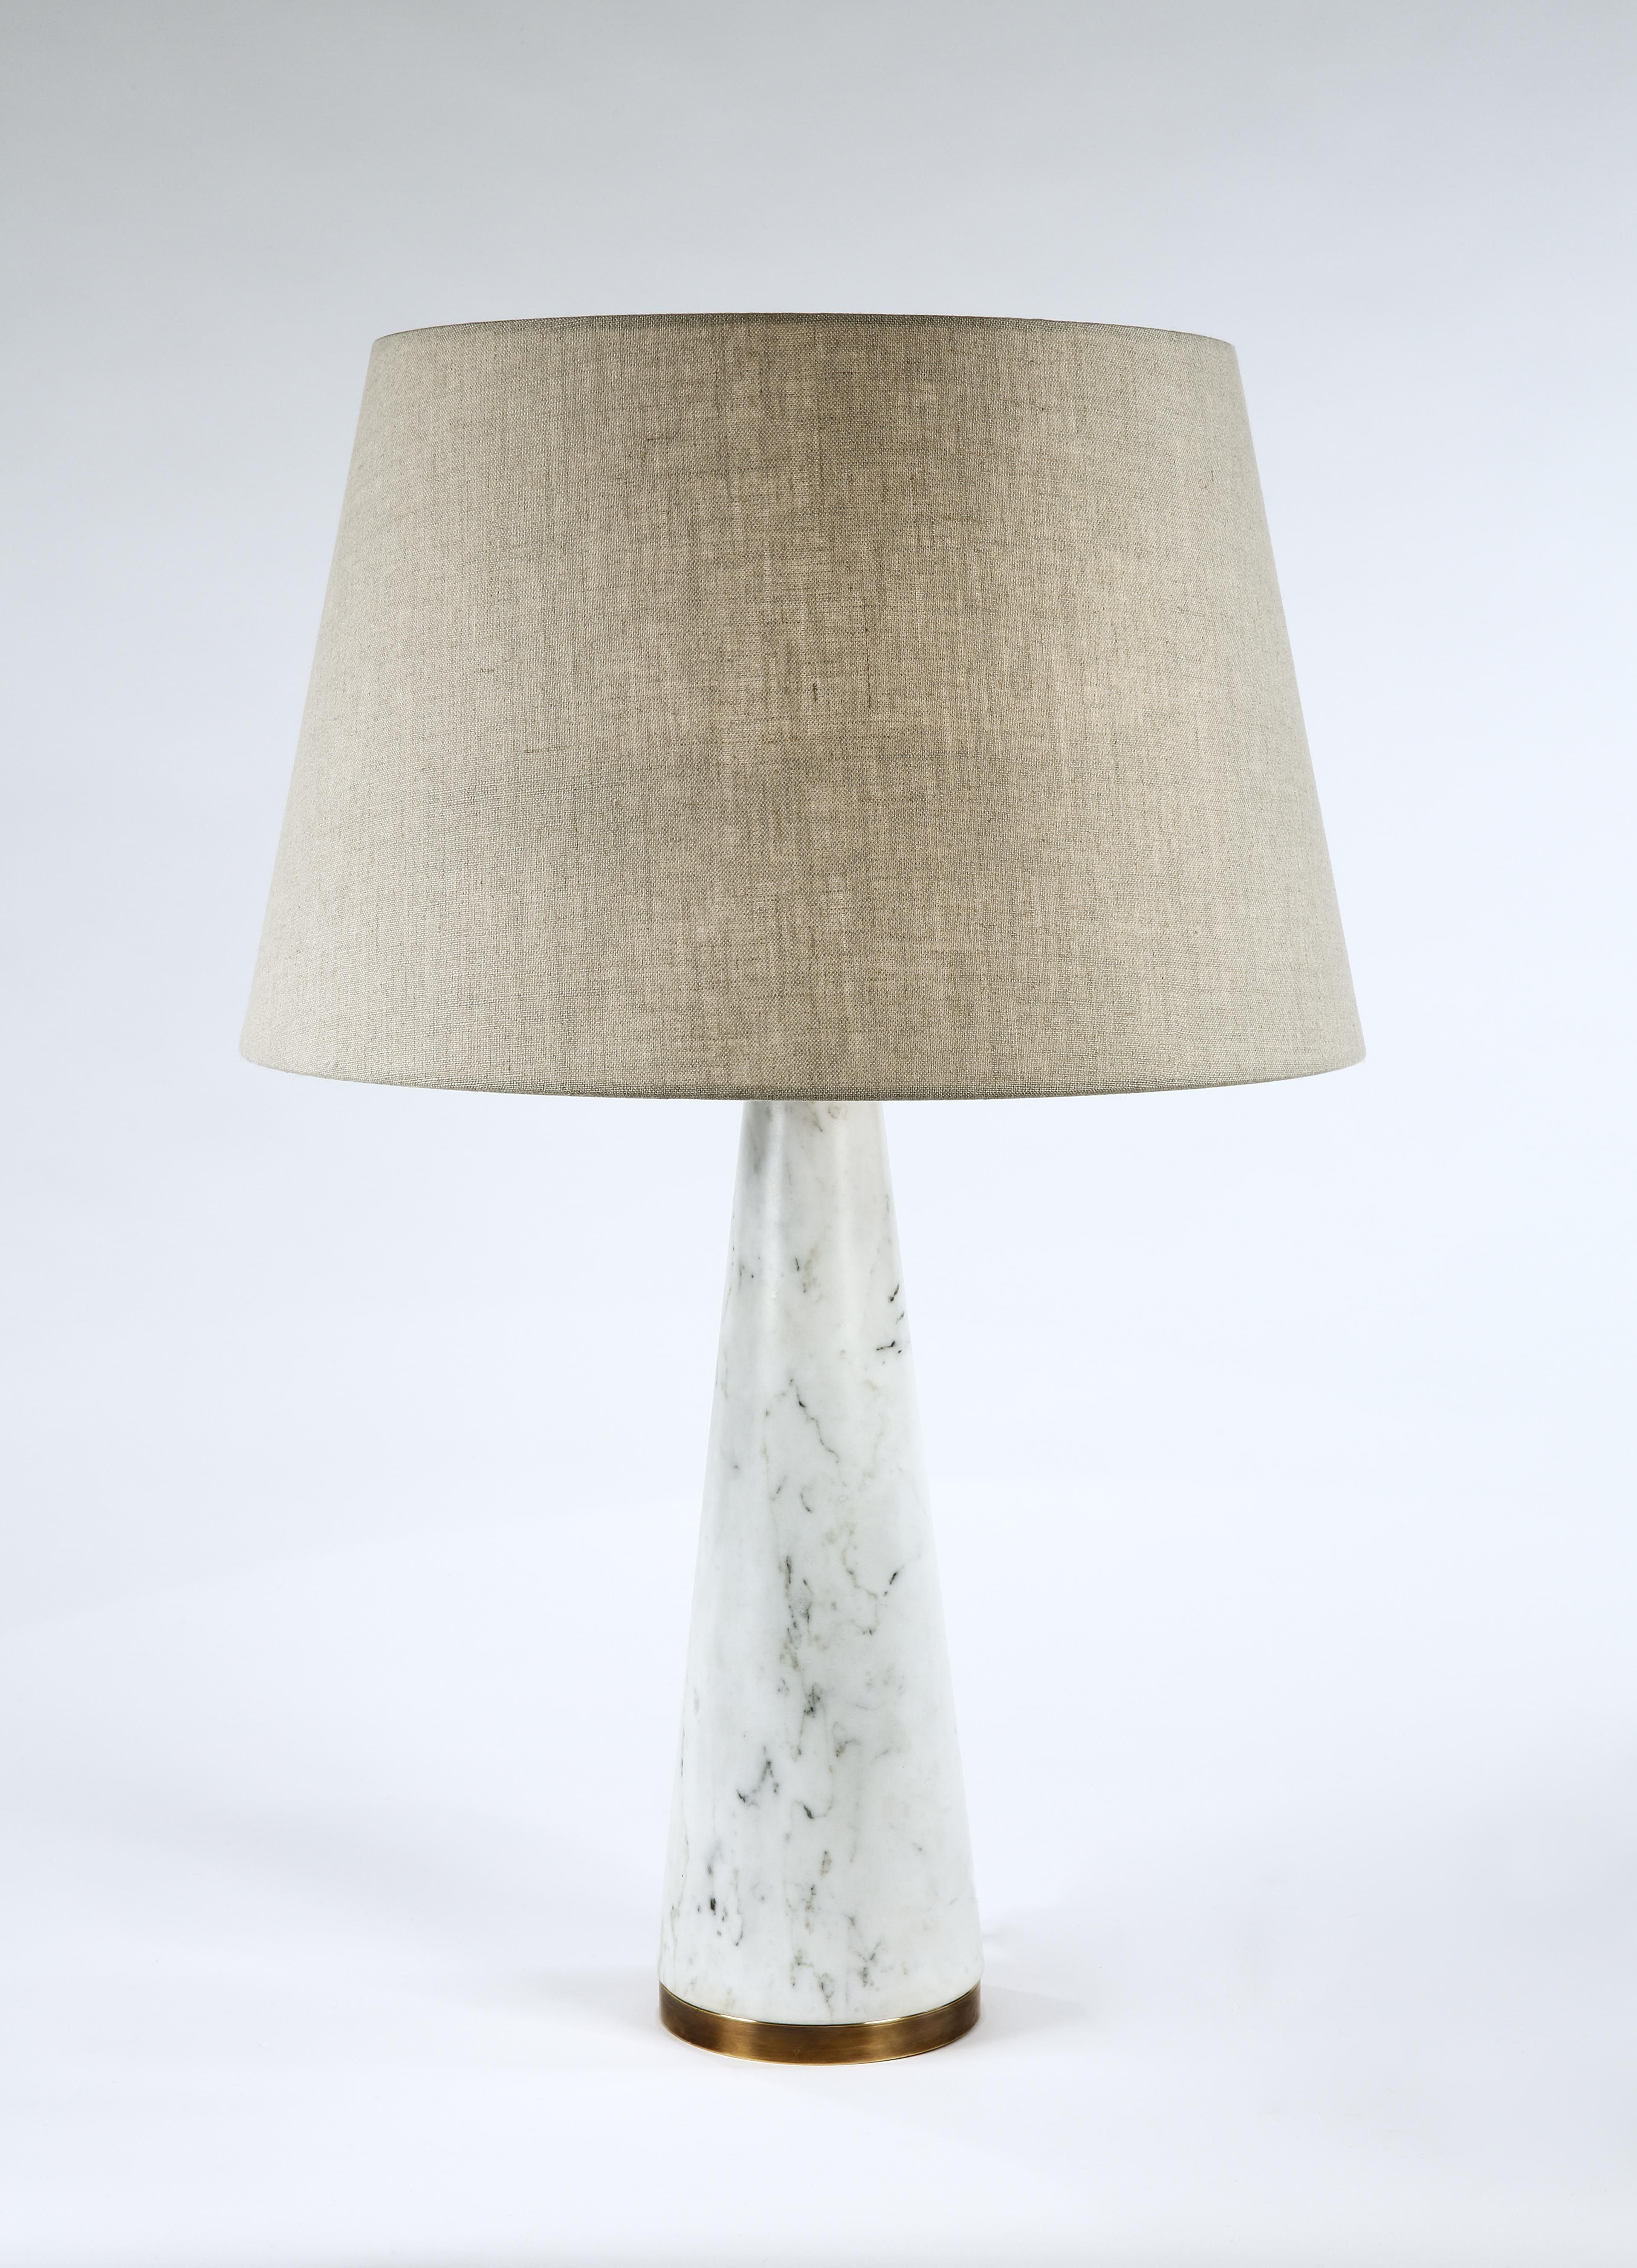 The marble cone lamp by rose uniacke rose uniacke table lamps the marble cone lamp by rose uniacke rose uniacke table lampsmarbles geotapseo Gallery